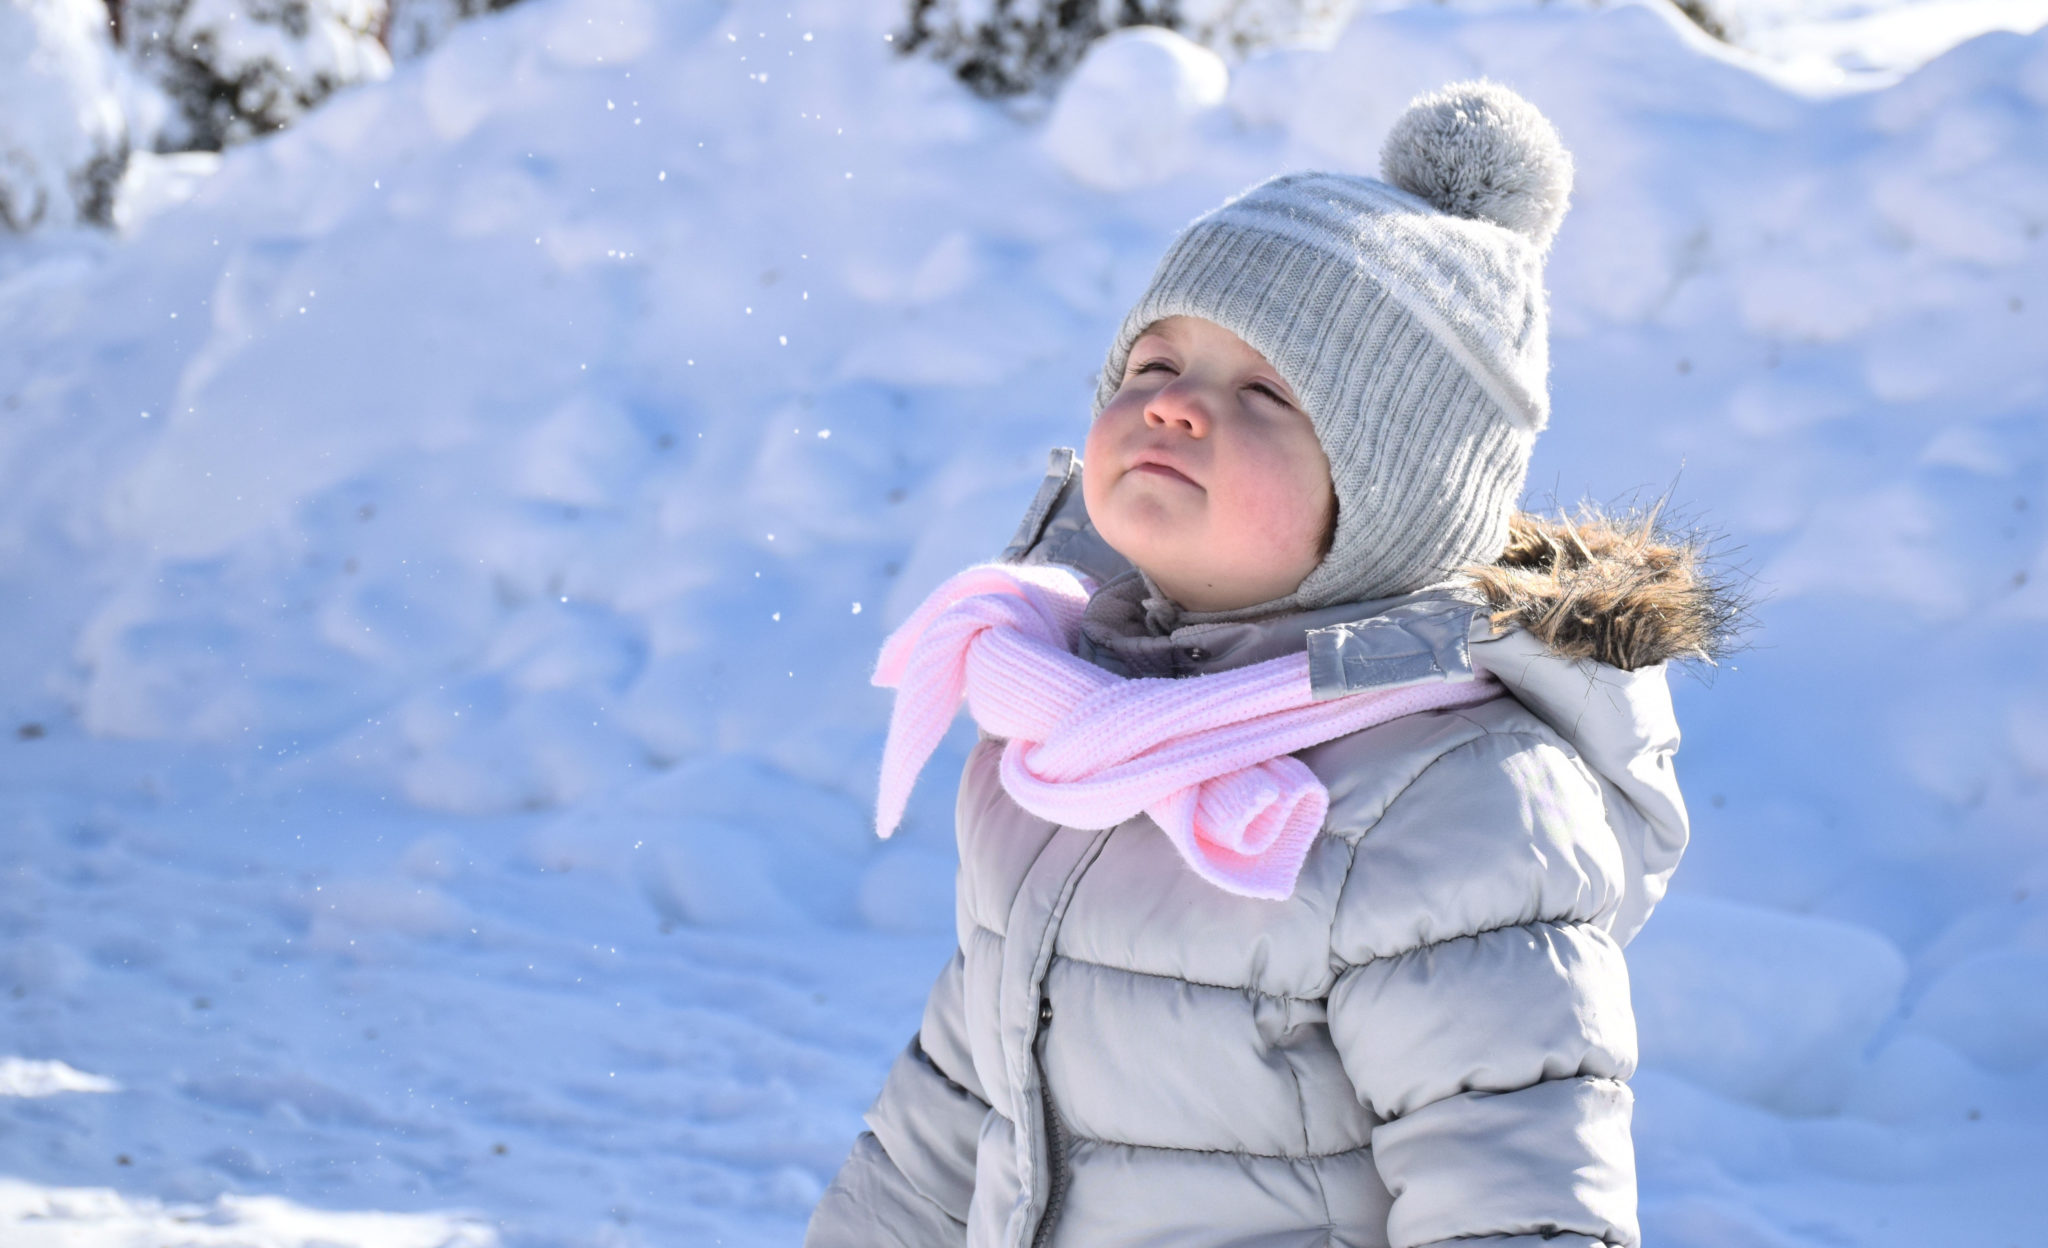 d3d102fa42b 10 Cheap and Fun Family Activities To Do This Winter - American ...